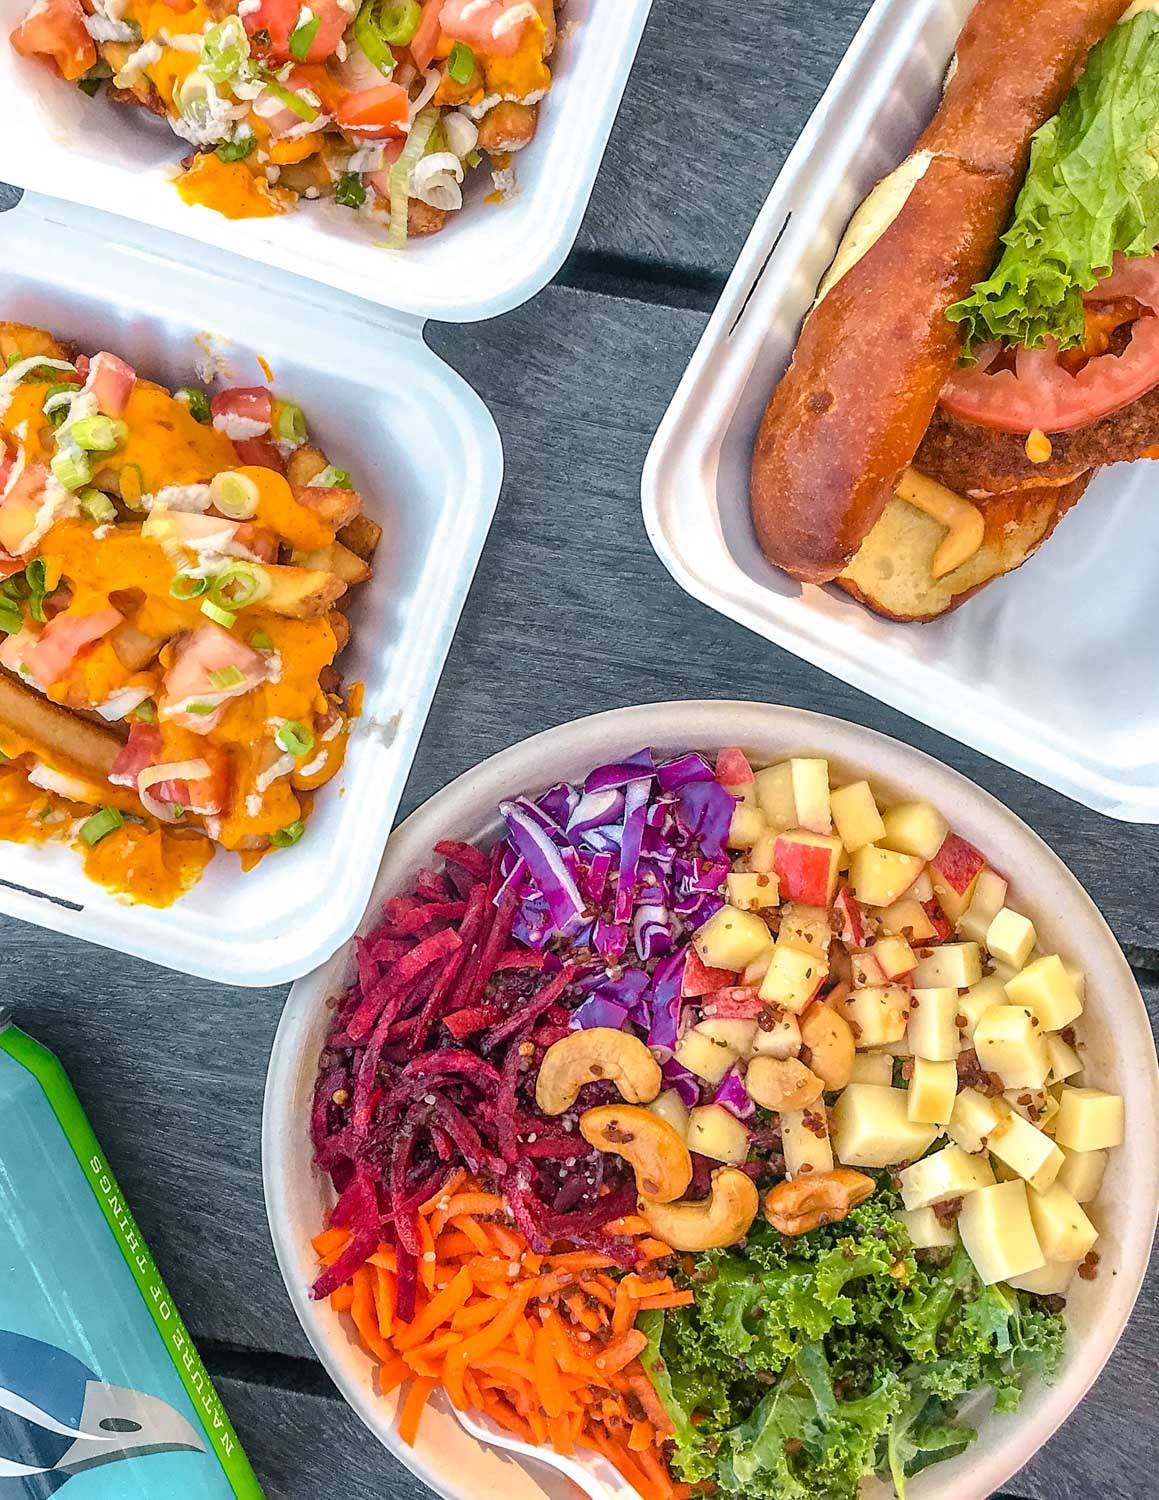 This guide helps you figure out the best restaurants in Stratford, best places to eat and other things to do in Stratford so you can make your time in Stratford the best possible. It also includes Braai review, The Pulp Review, and The Plant Diner review